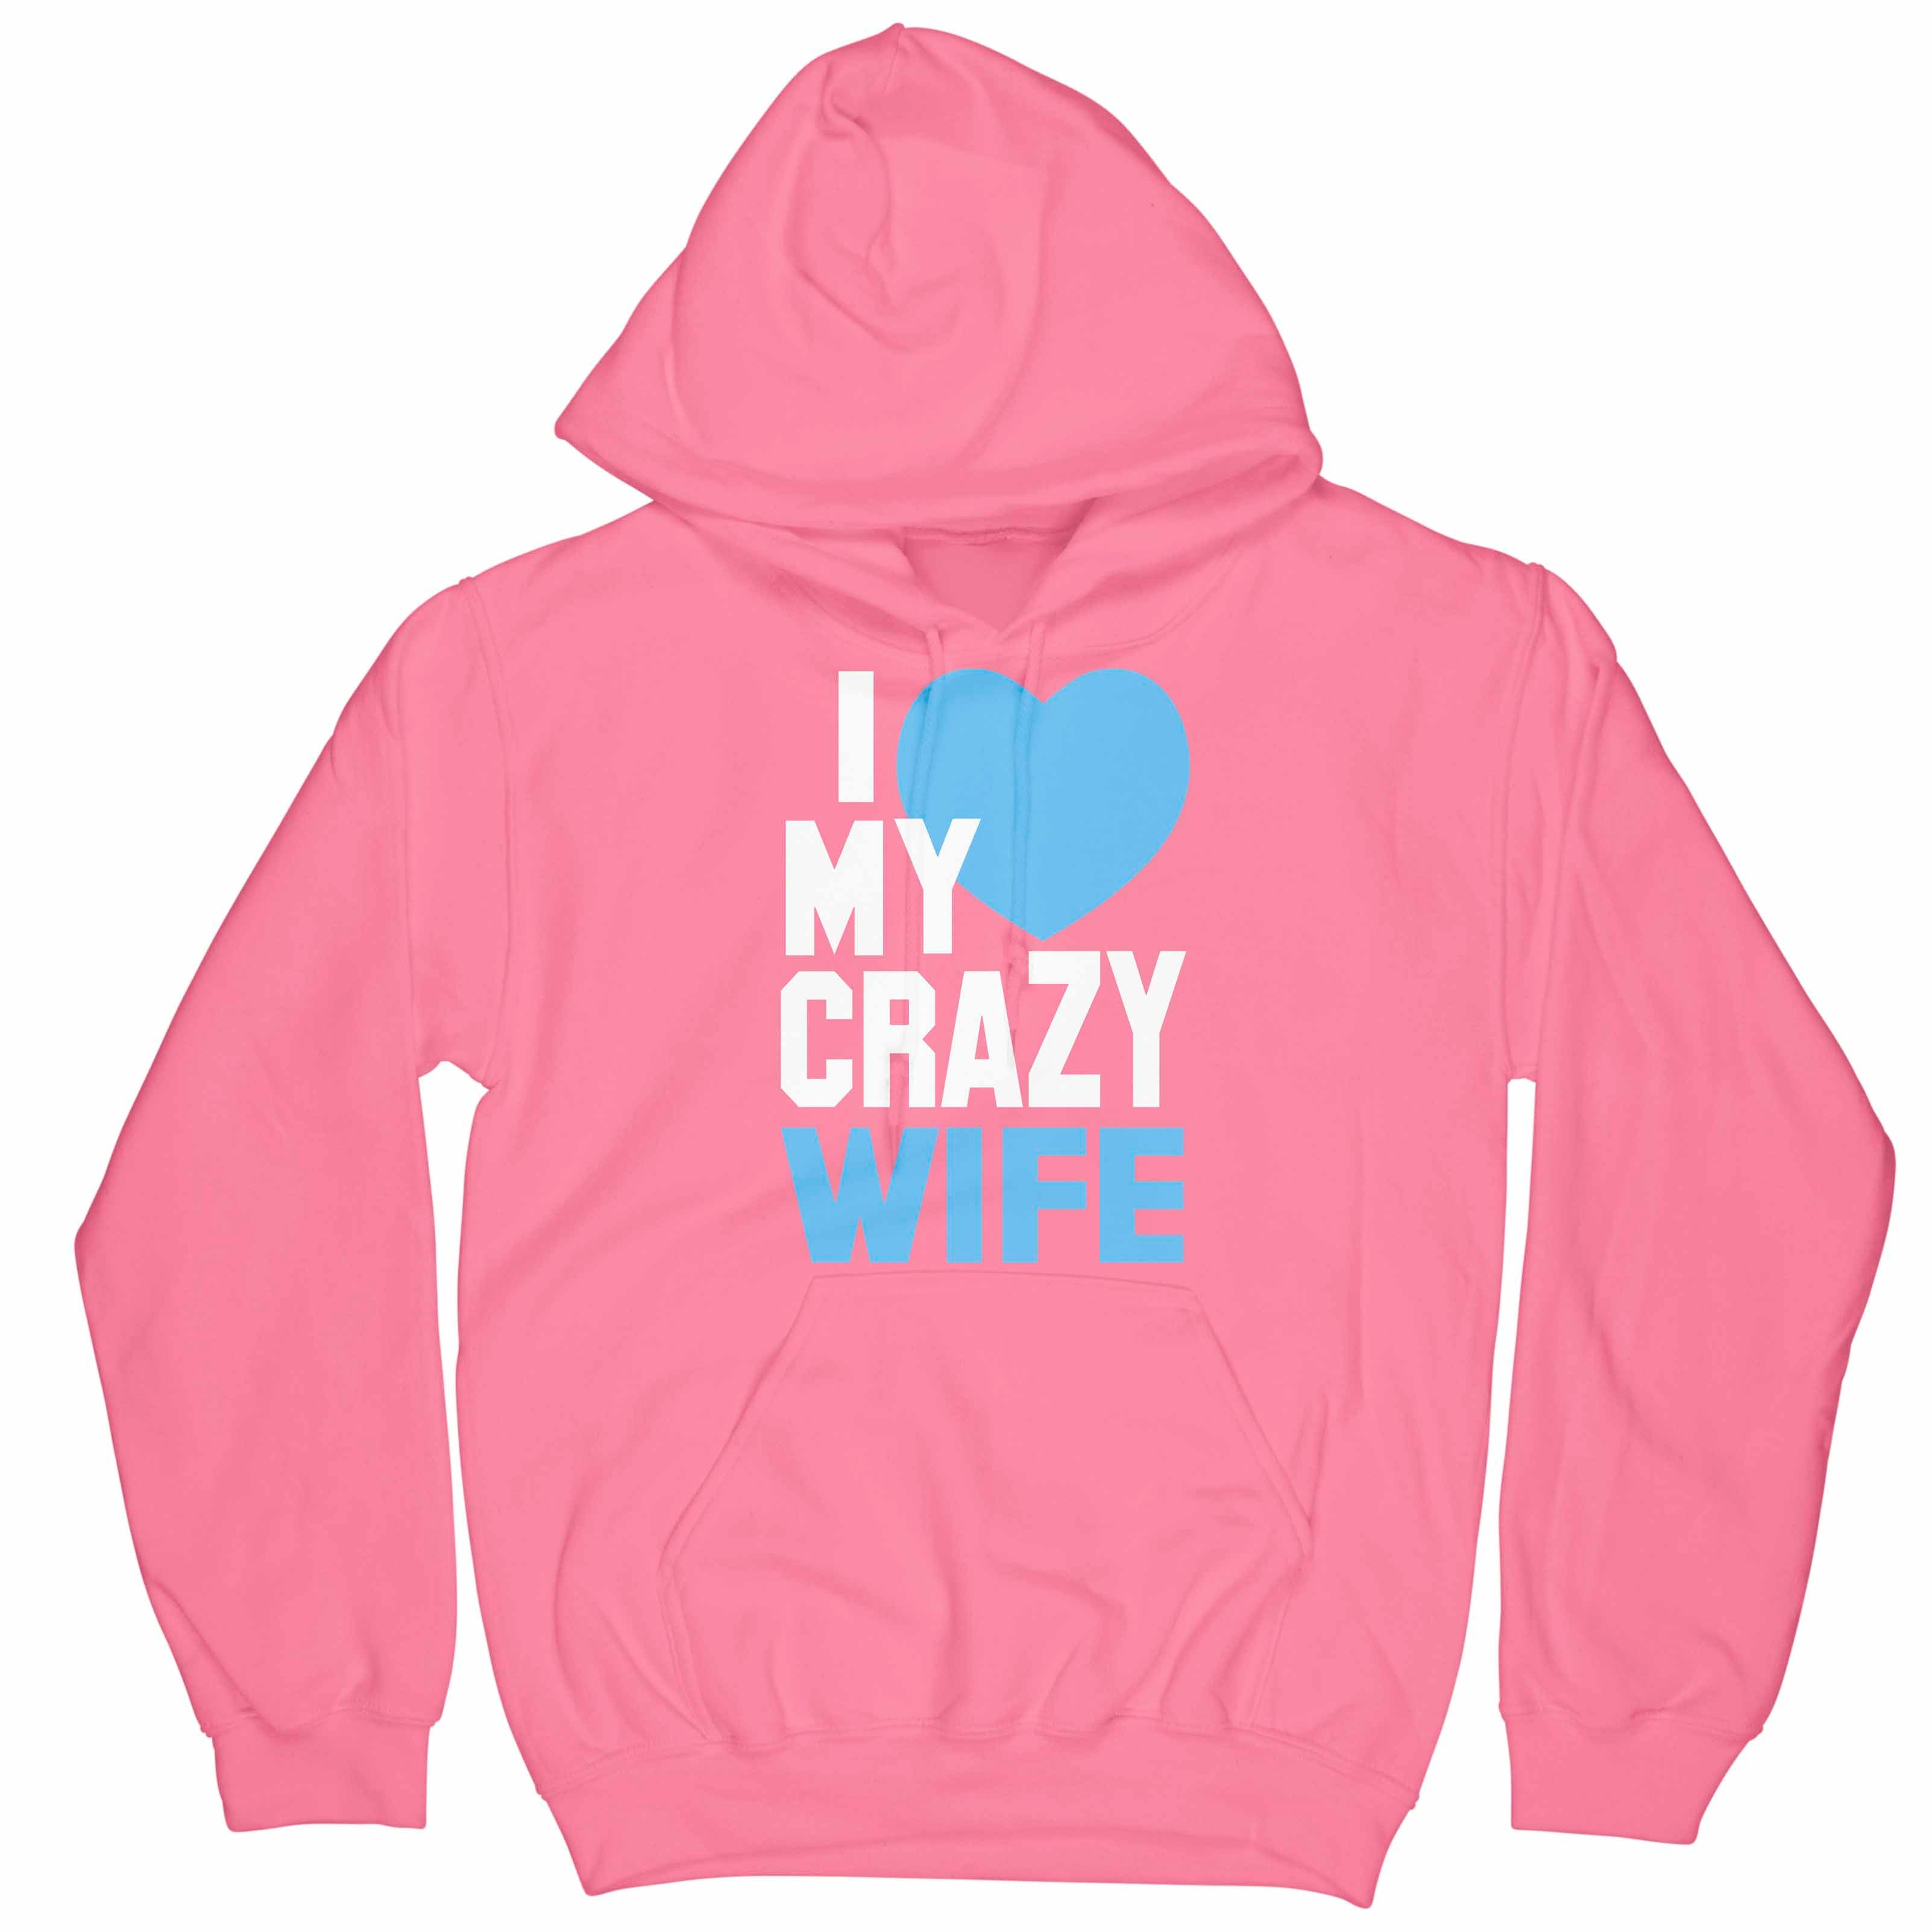 MY CRAZY WIFE Hoodie